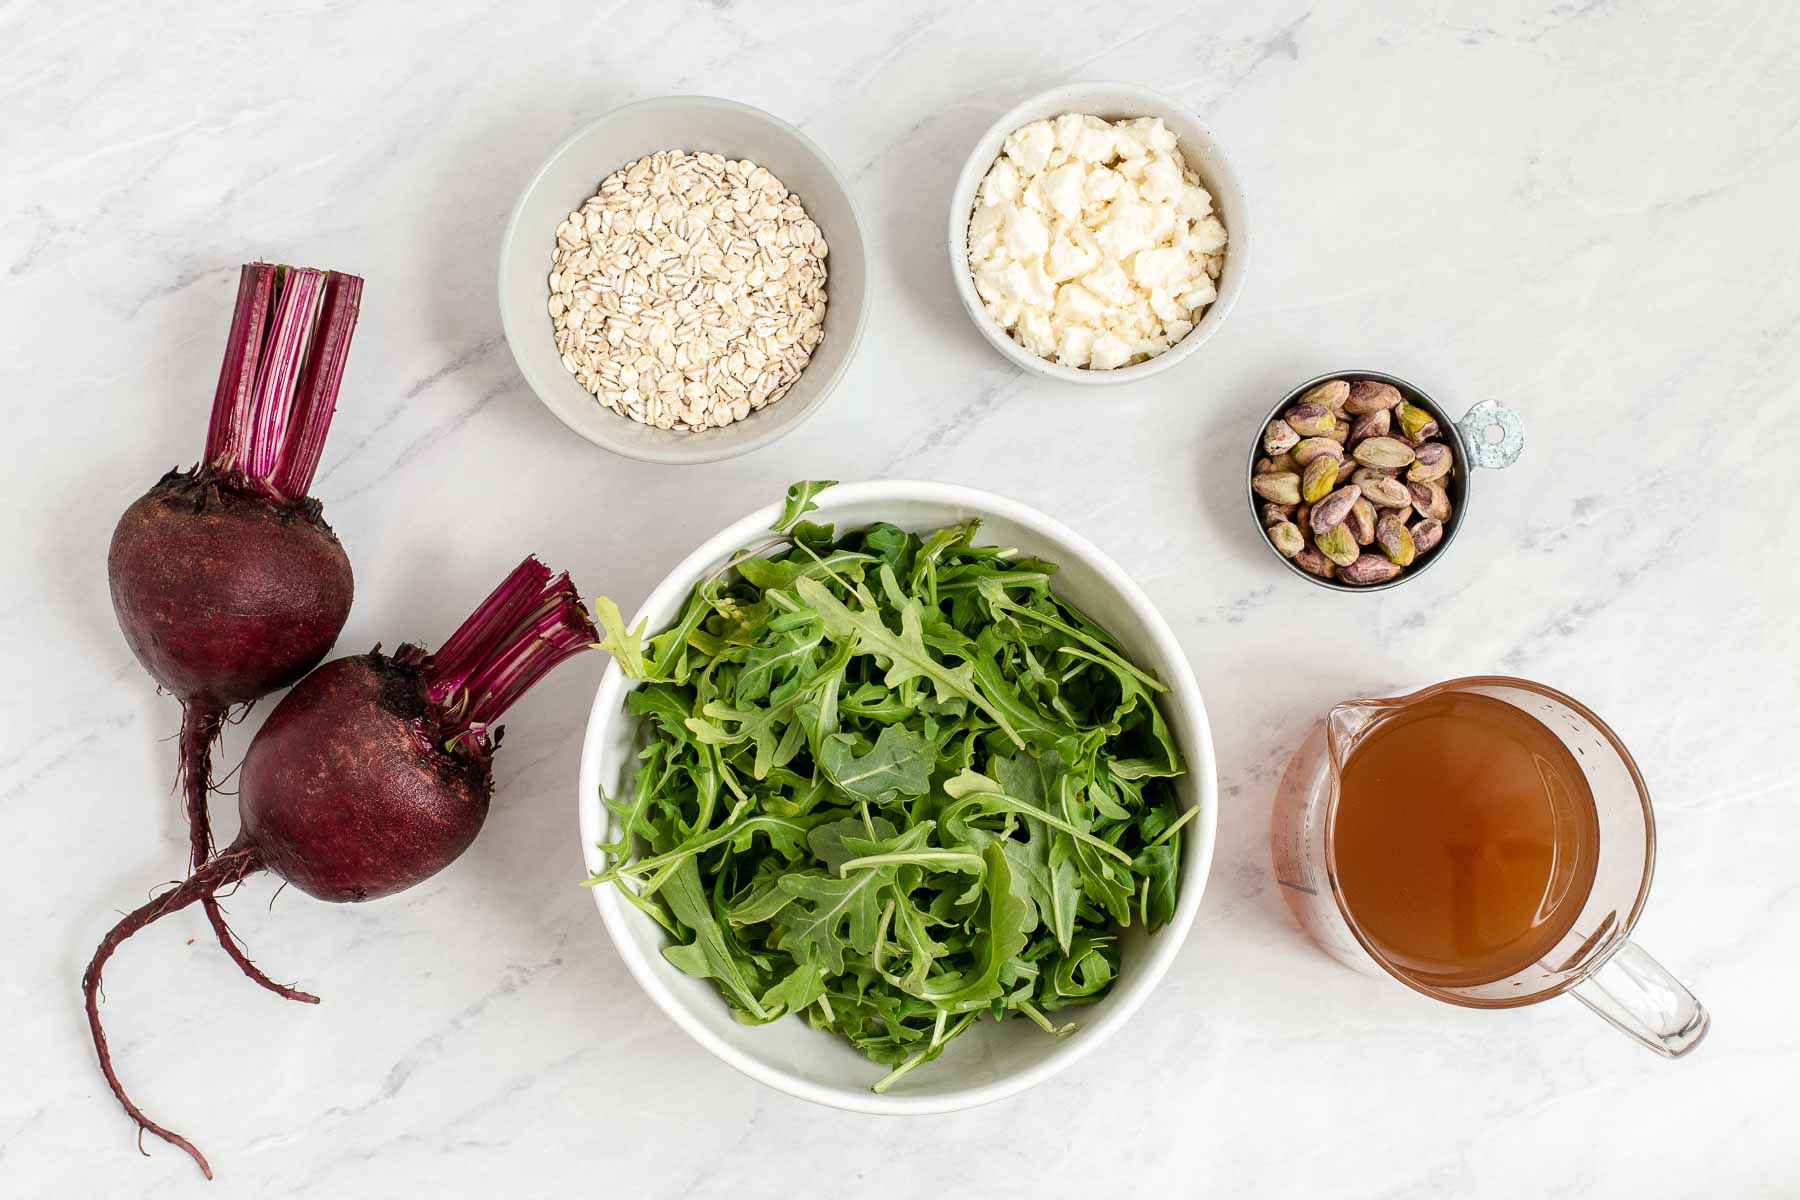 Ingredients for beetroot and feta salad on a white table.